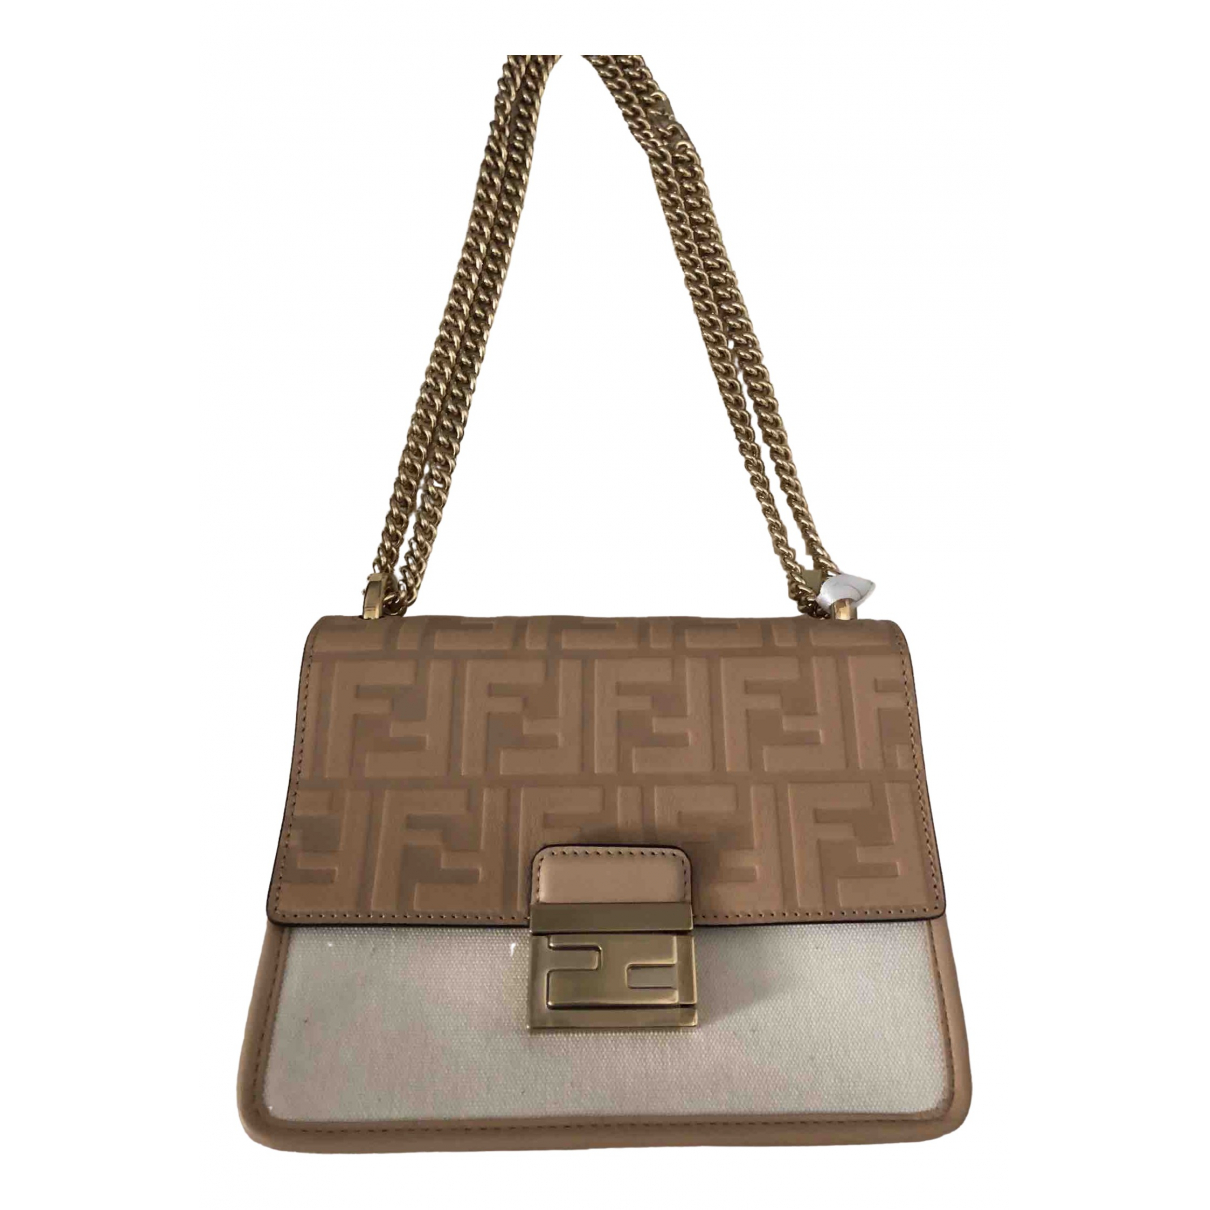 Fendi Kan U Beige Leather handbag for Women \N